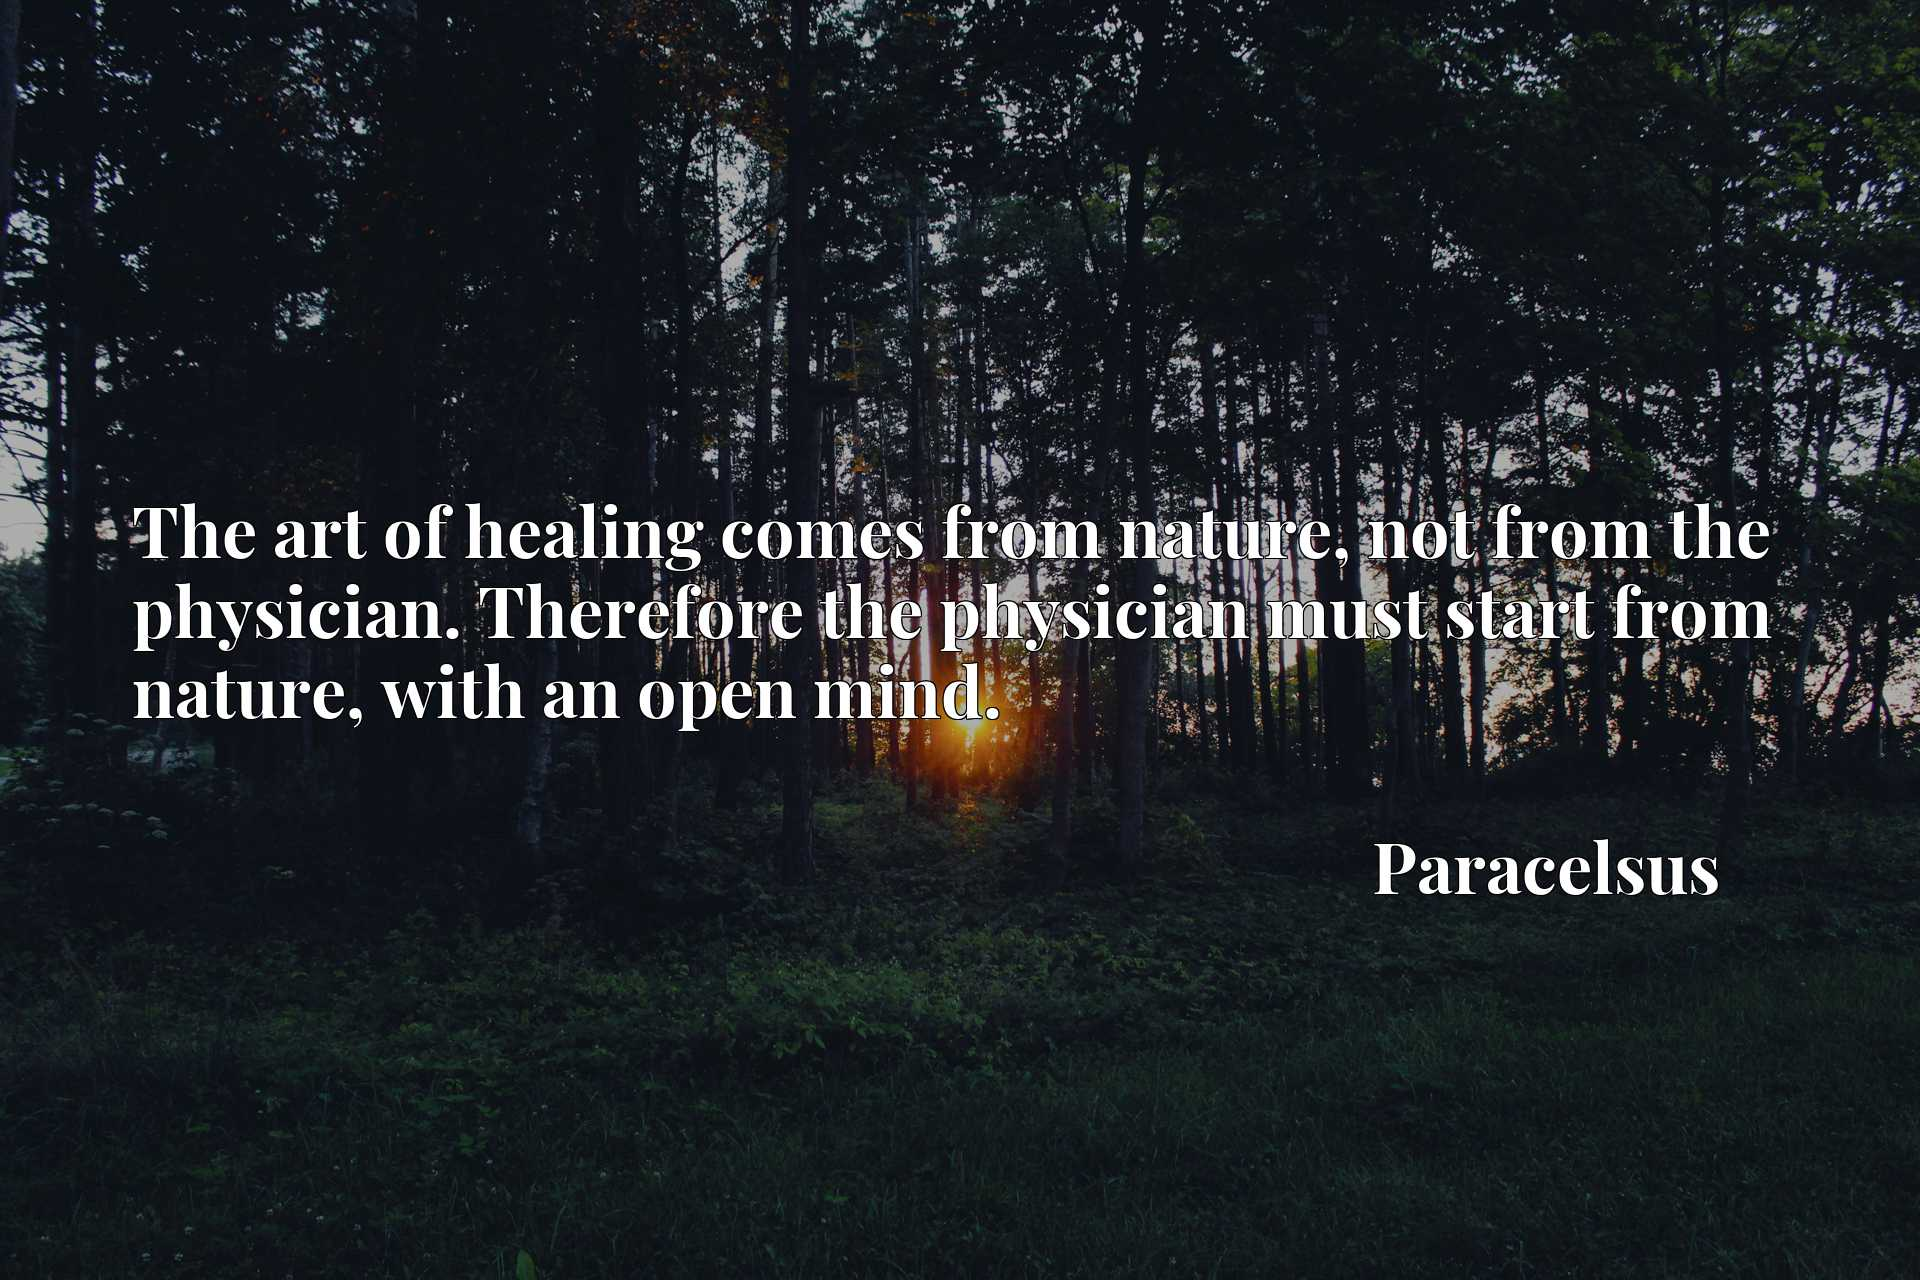 The art of healing comes from nature, not from the physician. Therefore the physician must start from nature, with an open mind.